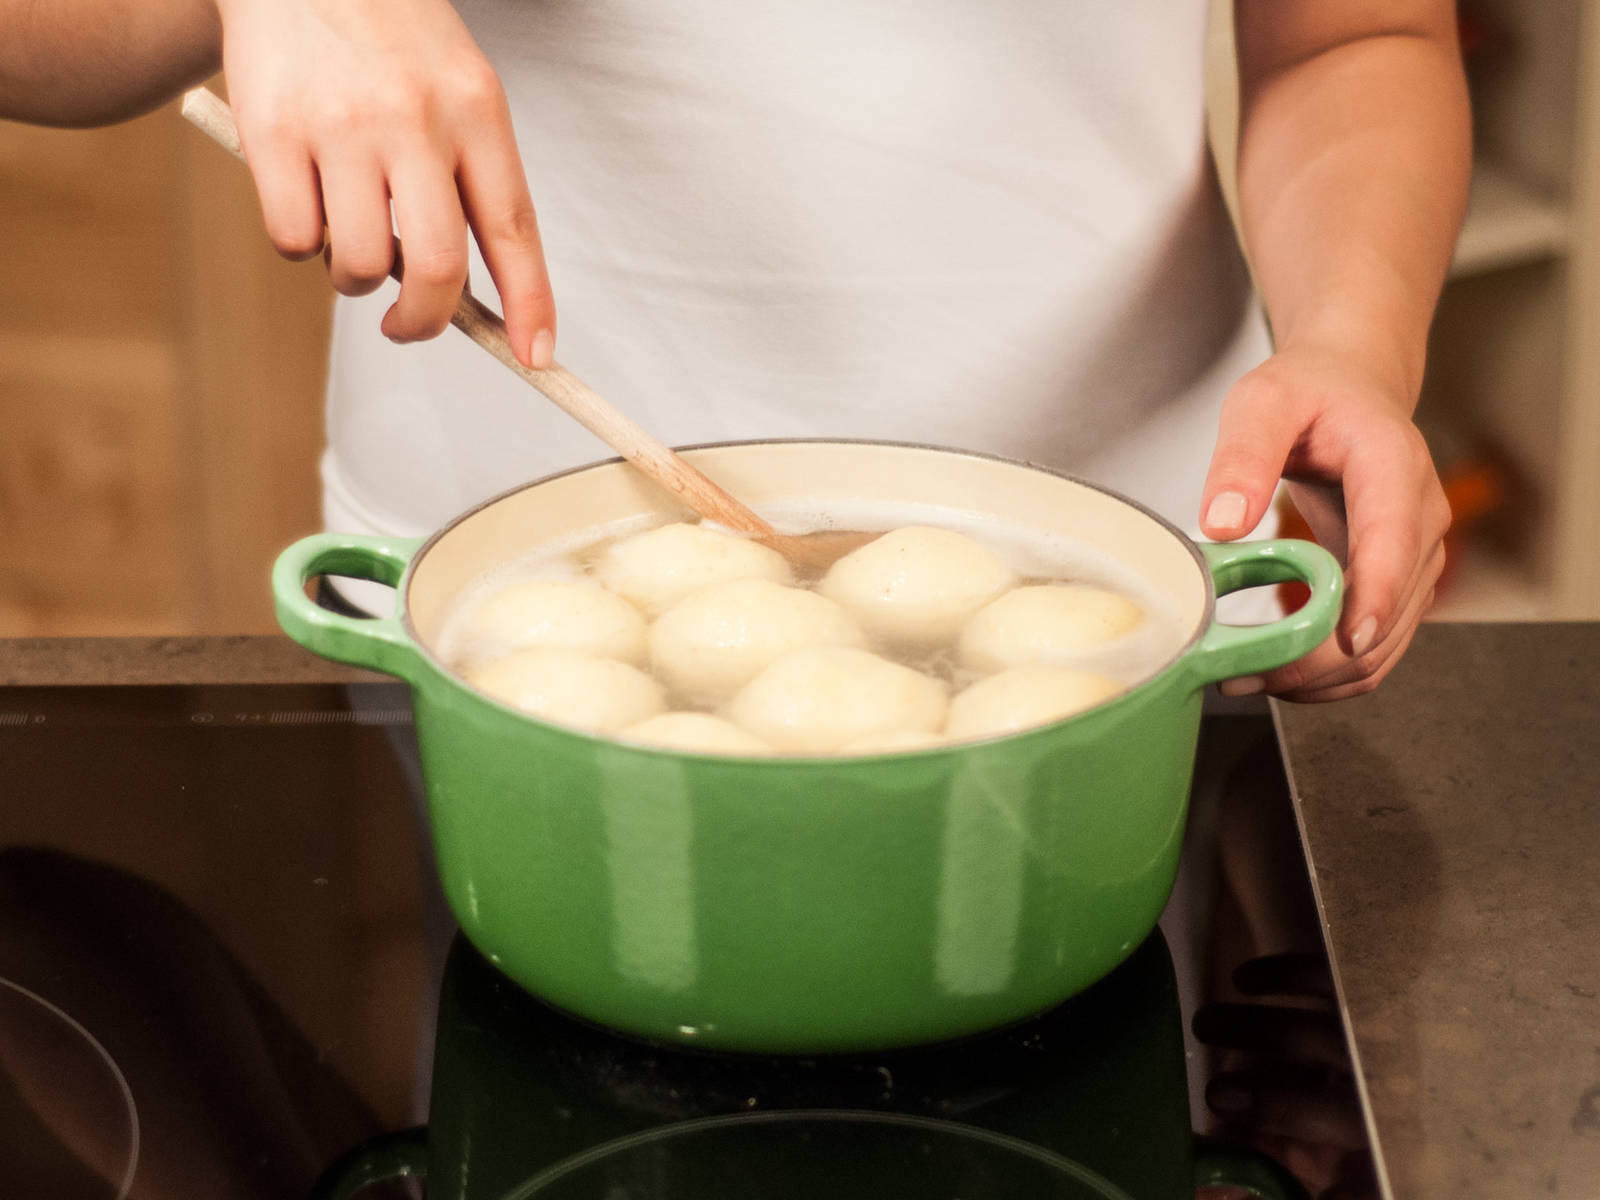 Bring a large pot of lightly salted water to a boil. Carefully drop dumplings into water and reduce heat. Allow to steep for approx. 20 – 30 min. until dumplings are floating. Then, carefully remove from water with a skimmer.